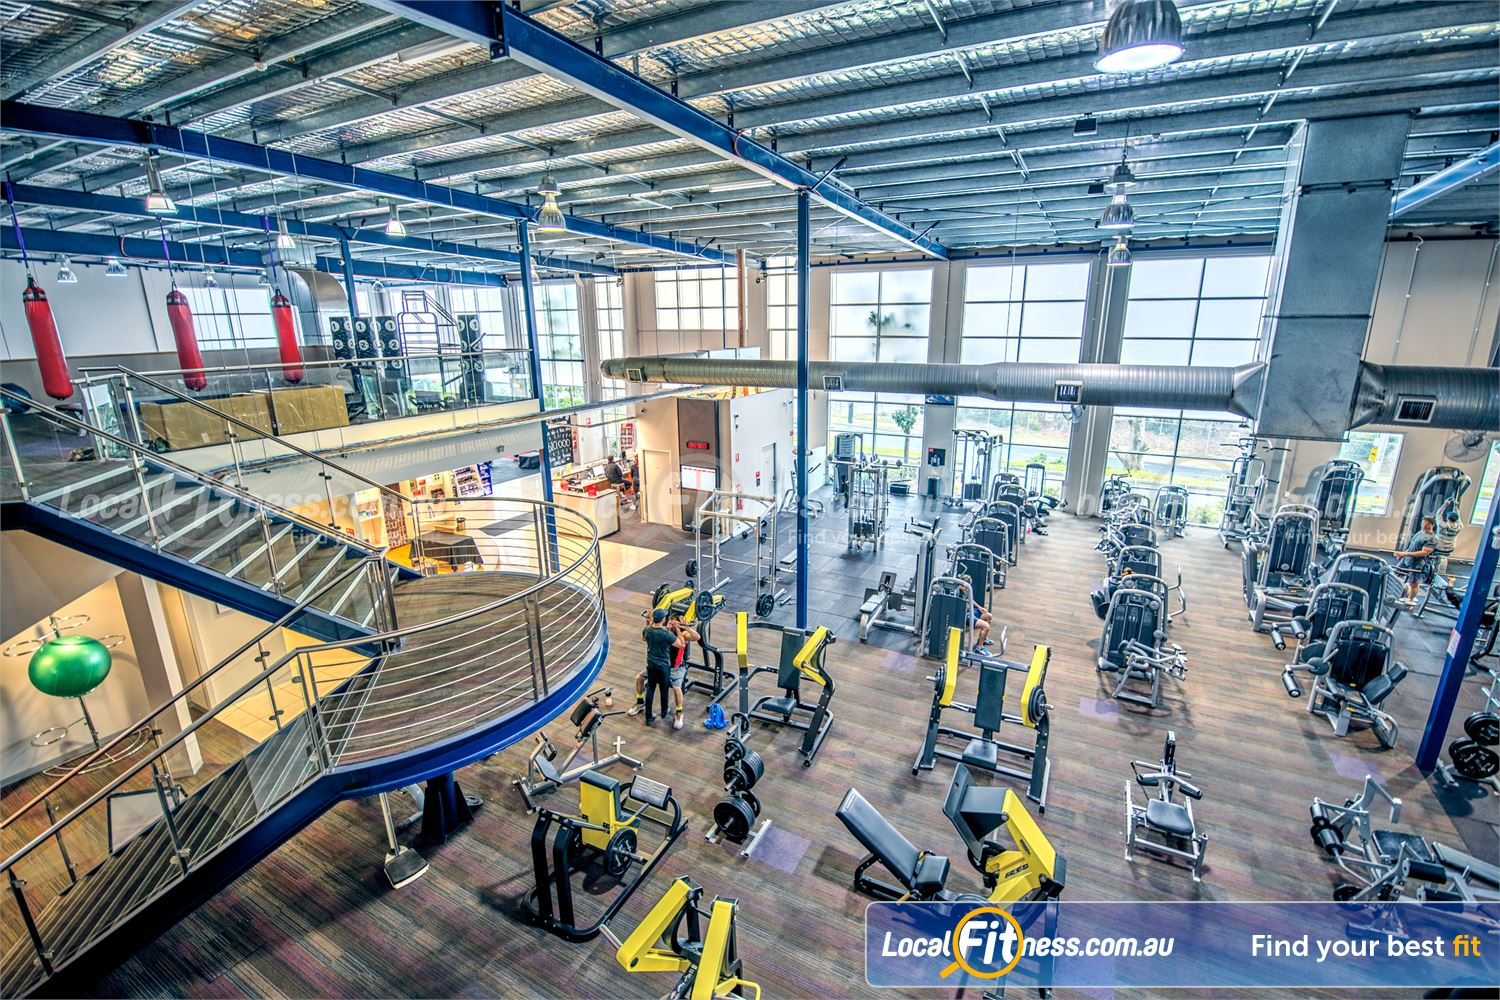 Fitness First Malvern Valley Chadstone Welcome to the multi-level Fitness First 24 hour Chadstone gym in Malvern Valley.